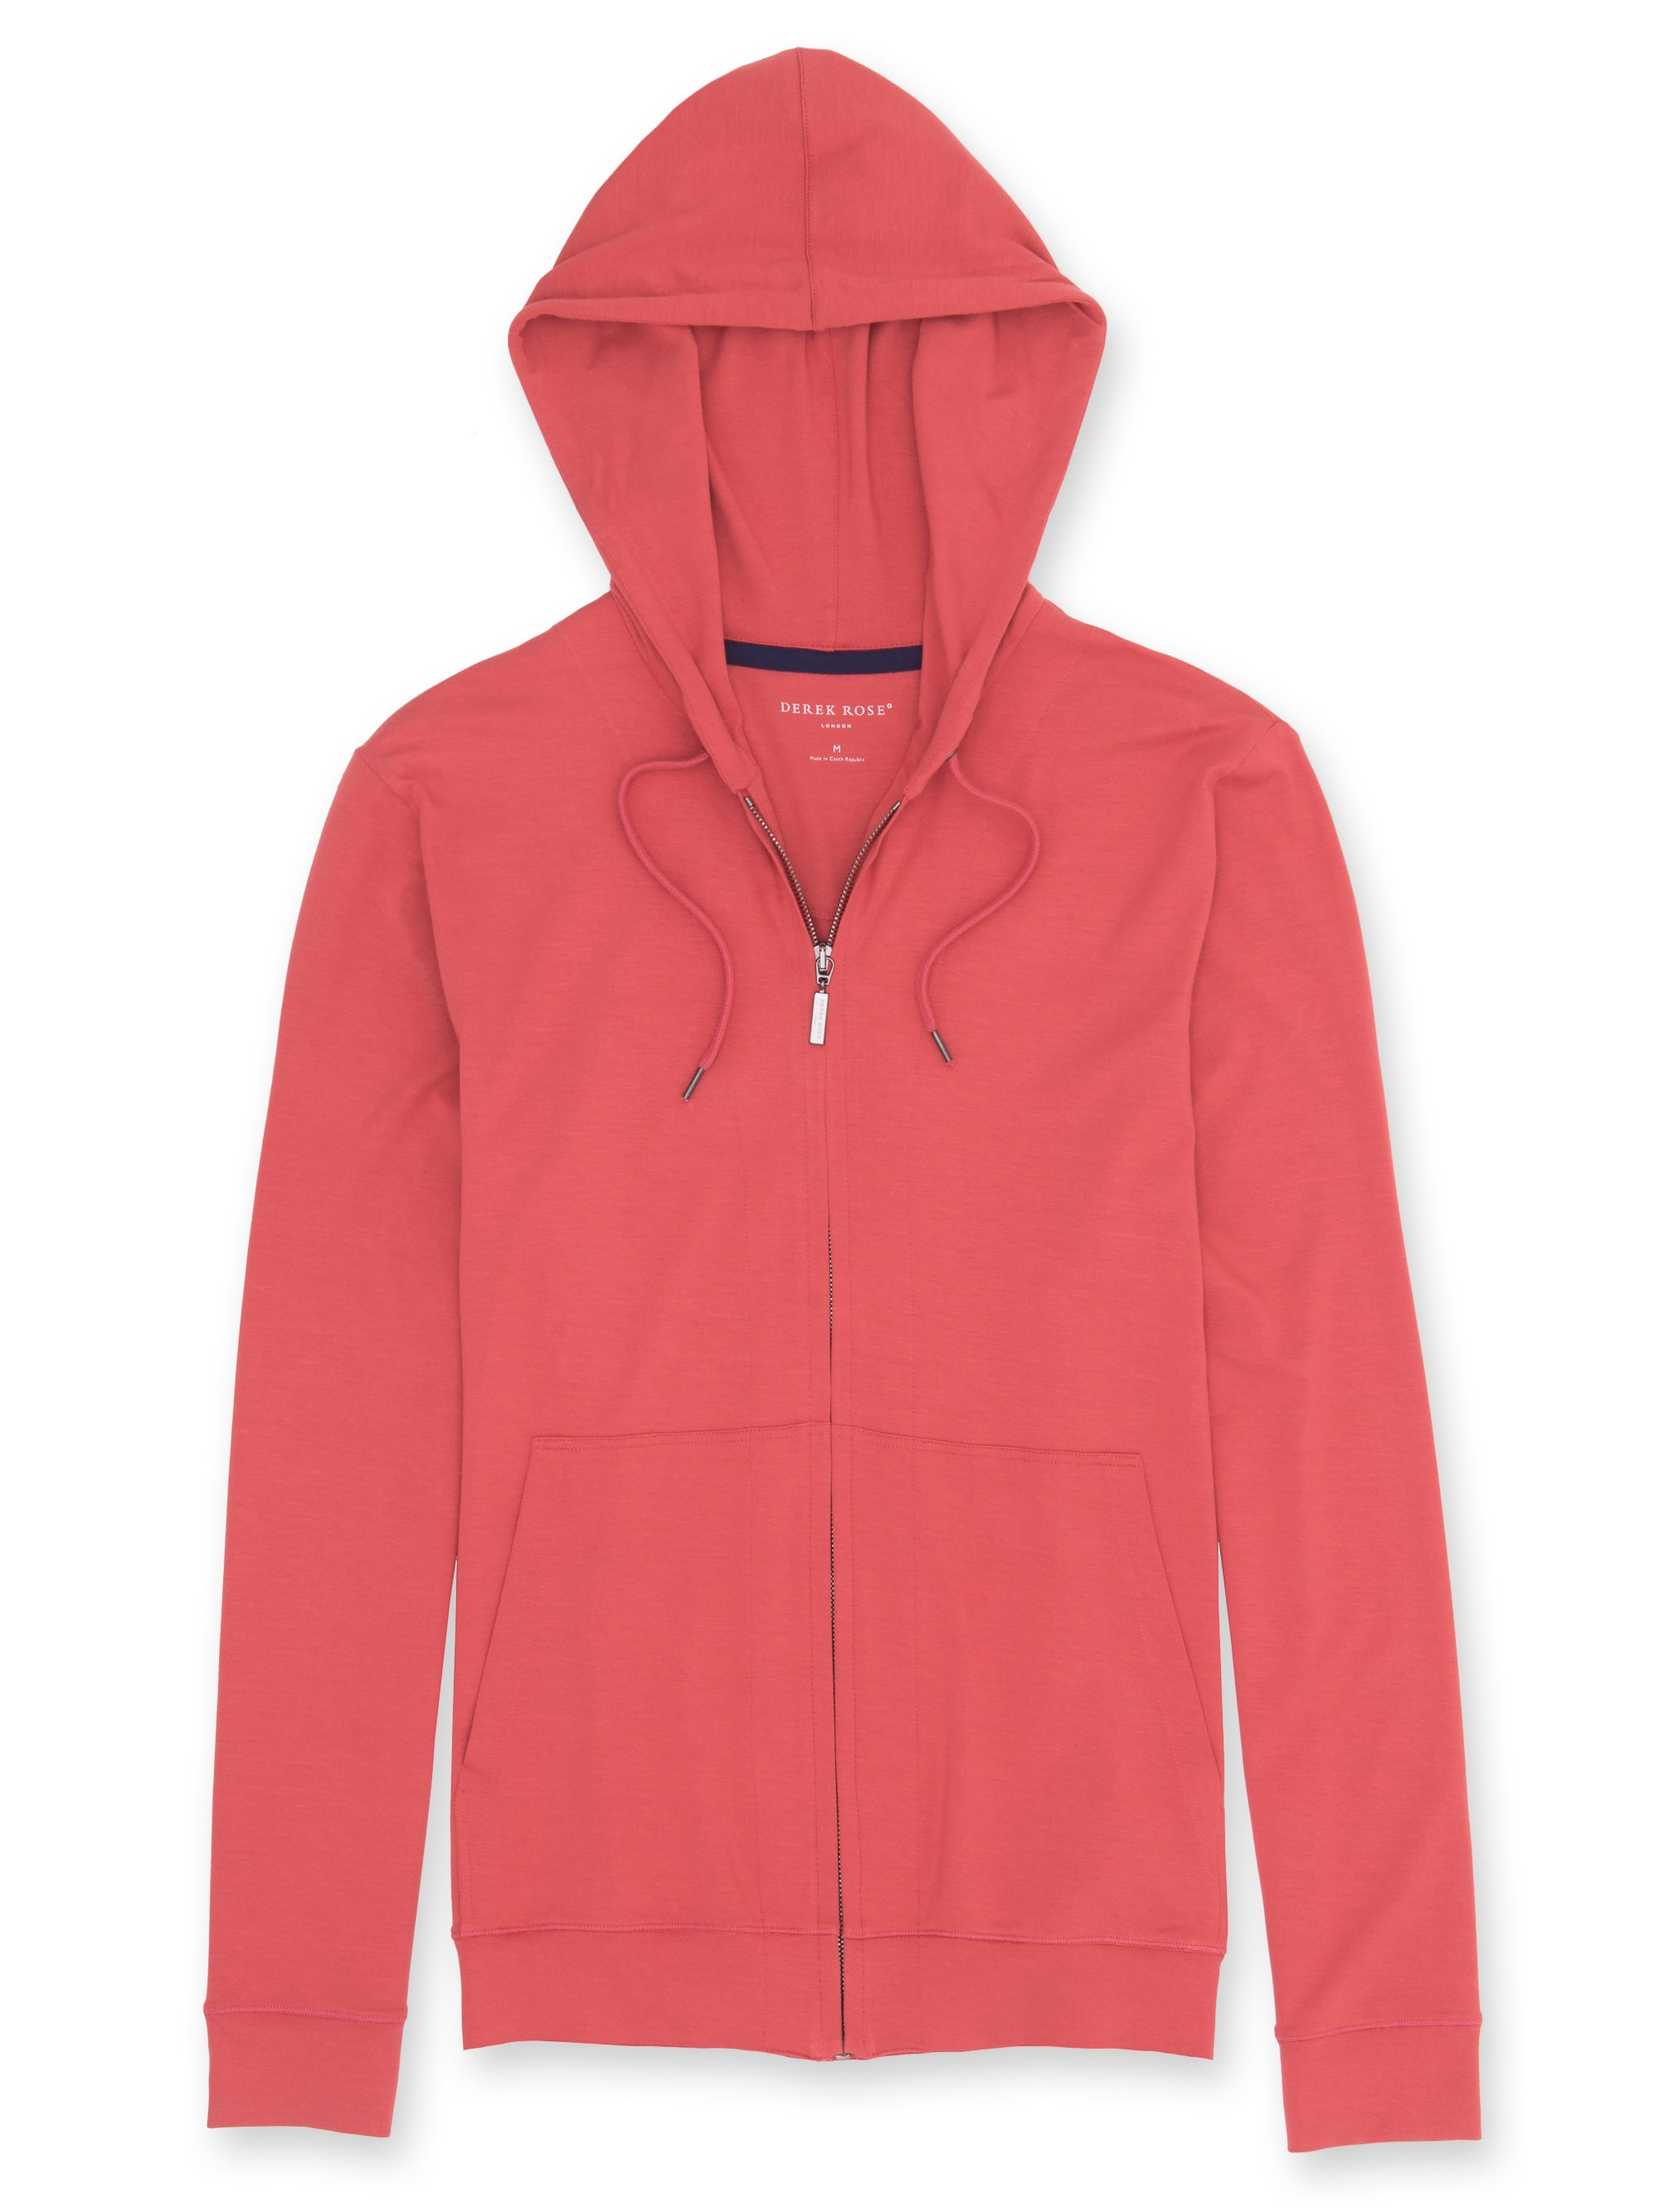 Basel 1 Coral Hooded Top